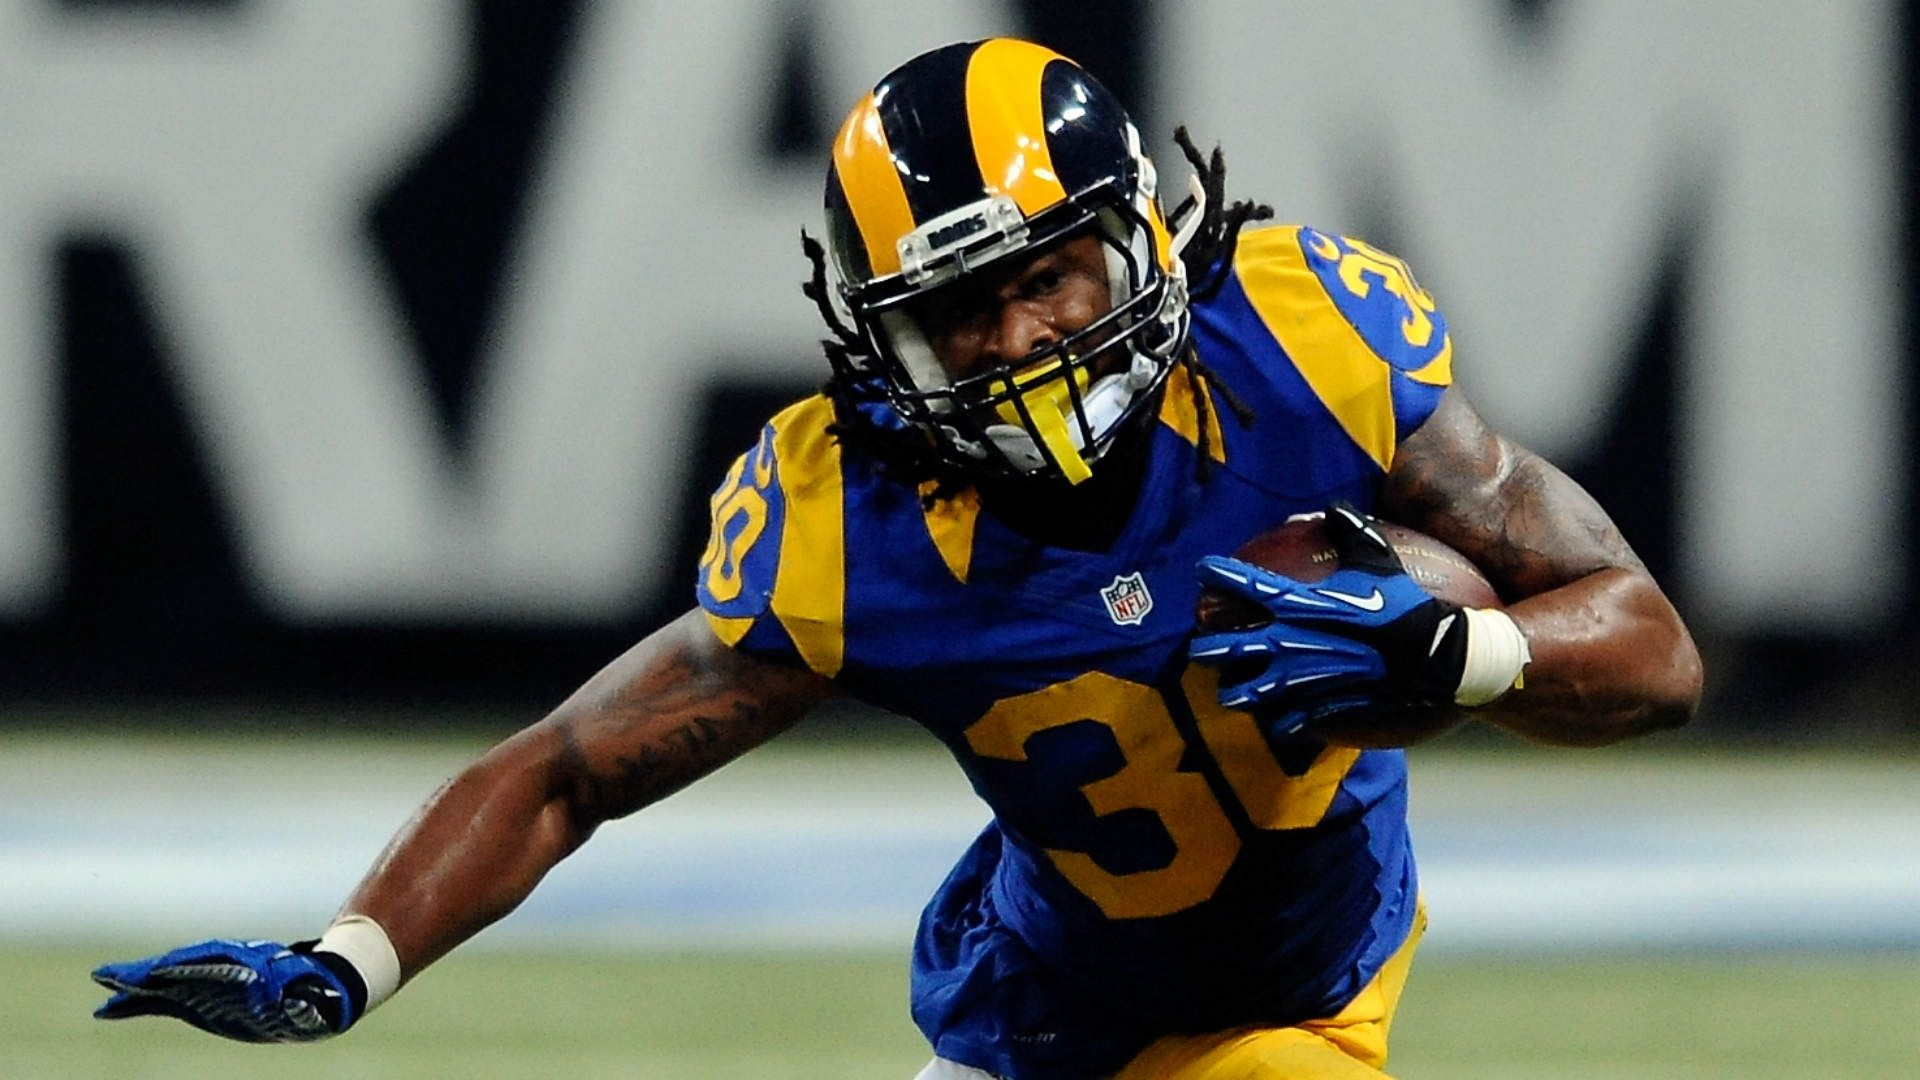 Nfl Rookie Of The Year Todd Gurley Rescuing Rams Rb Position Todd Gurley Nfl Fantasy Football Nfl